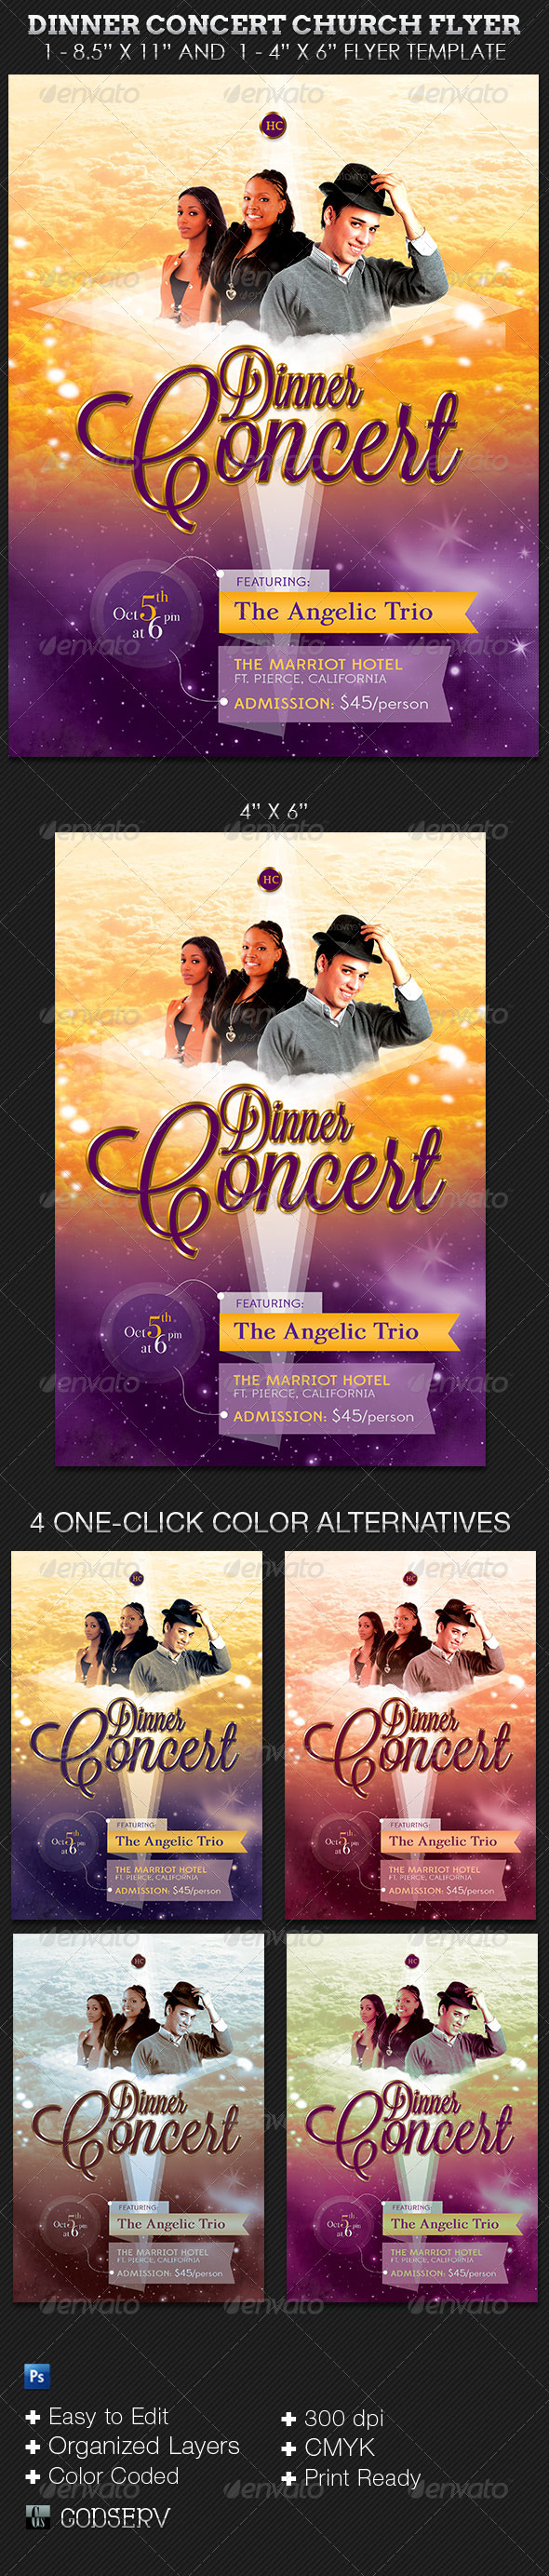 Dinner Concert Church Flyer Template - Church Flyers